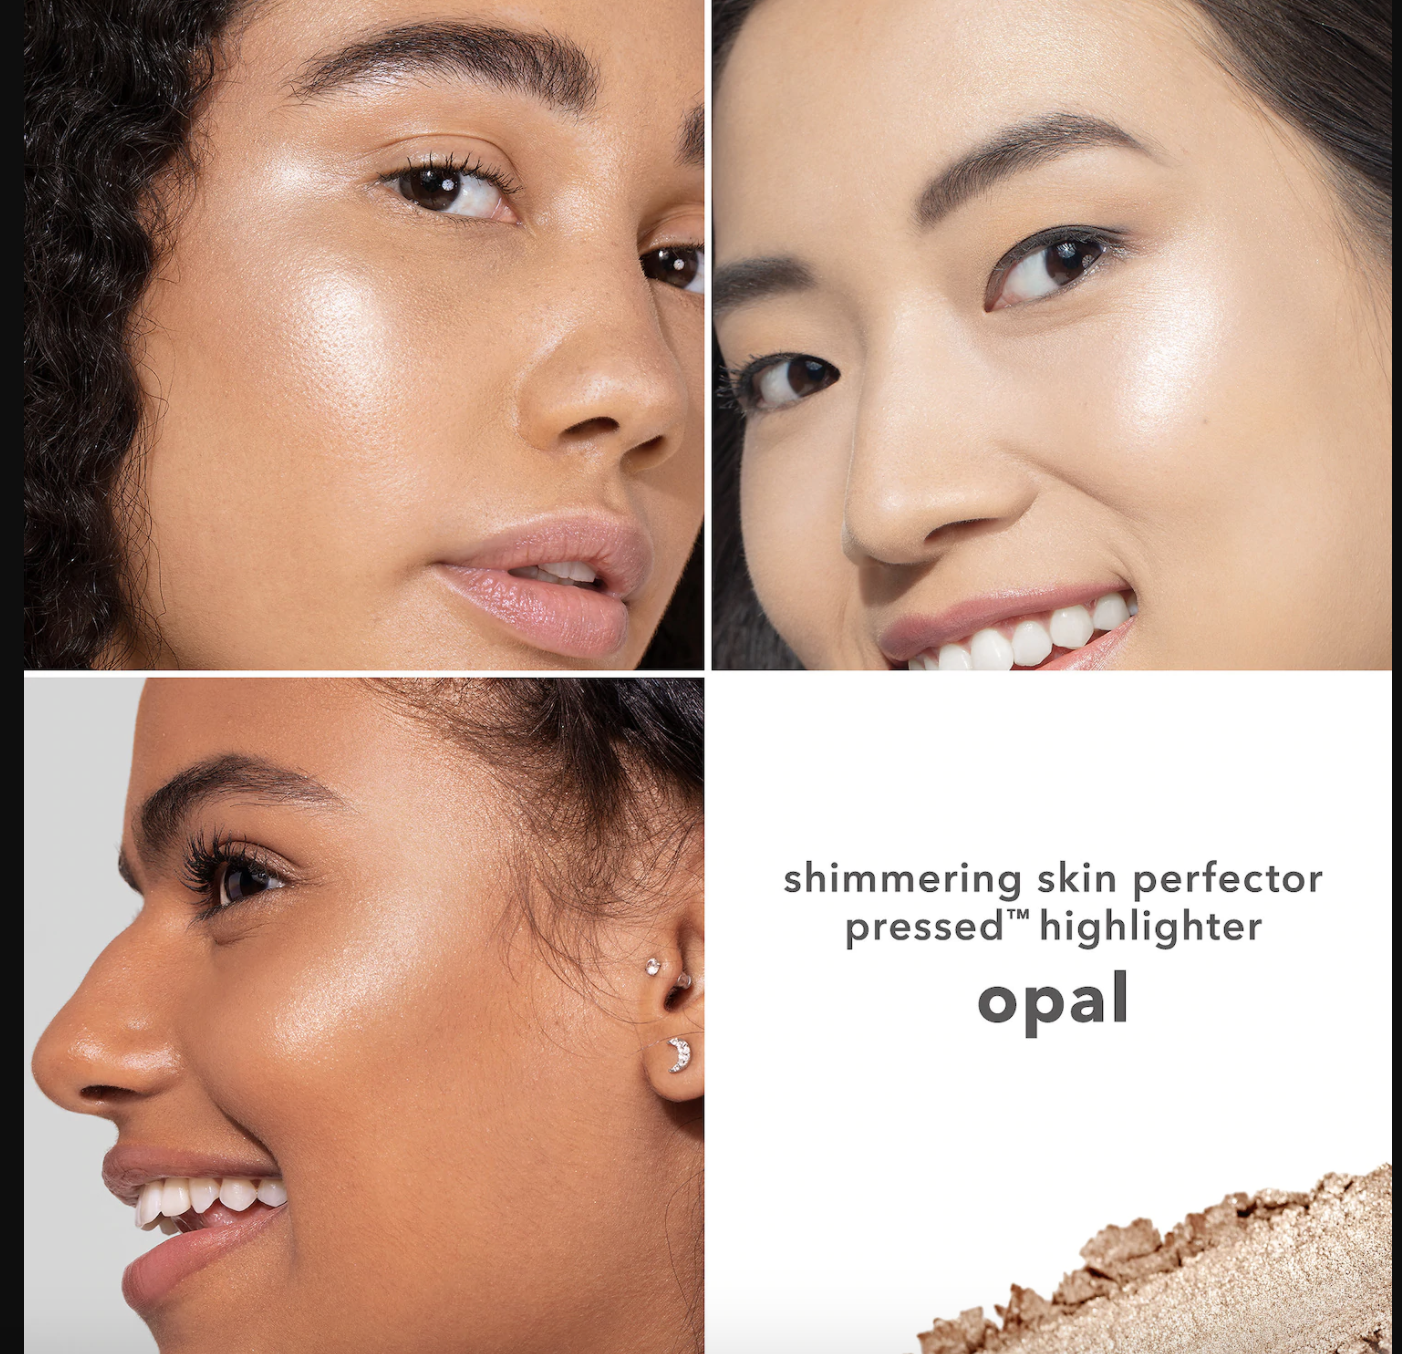 Three models showing how flattering the shade is on different skin tones